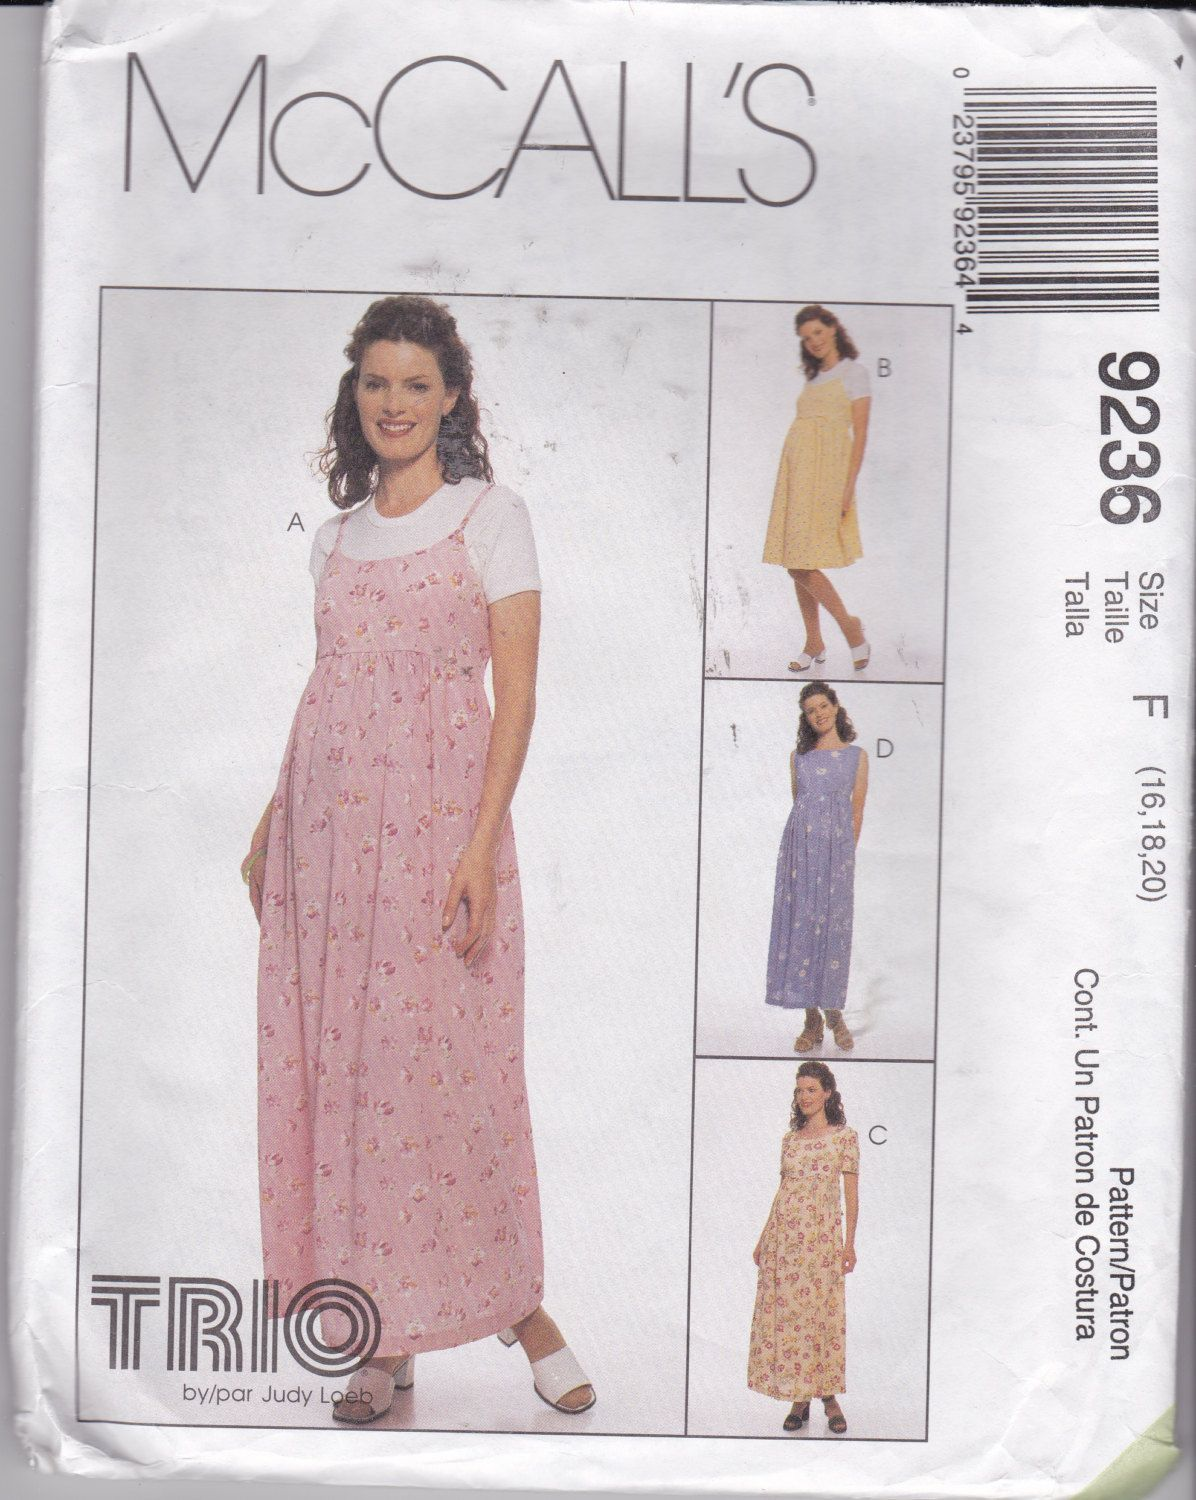 Mccalls 9236 size 16 a trio by judy loeb pattern for a maternity mccalls 9236 size 16 a trio by judy loeb pattern for a maternity dress and ombrellifo Choice Image